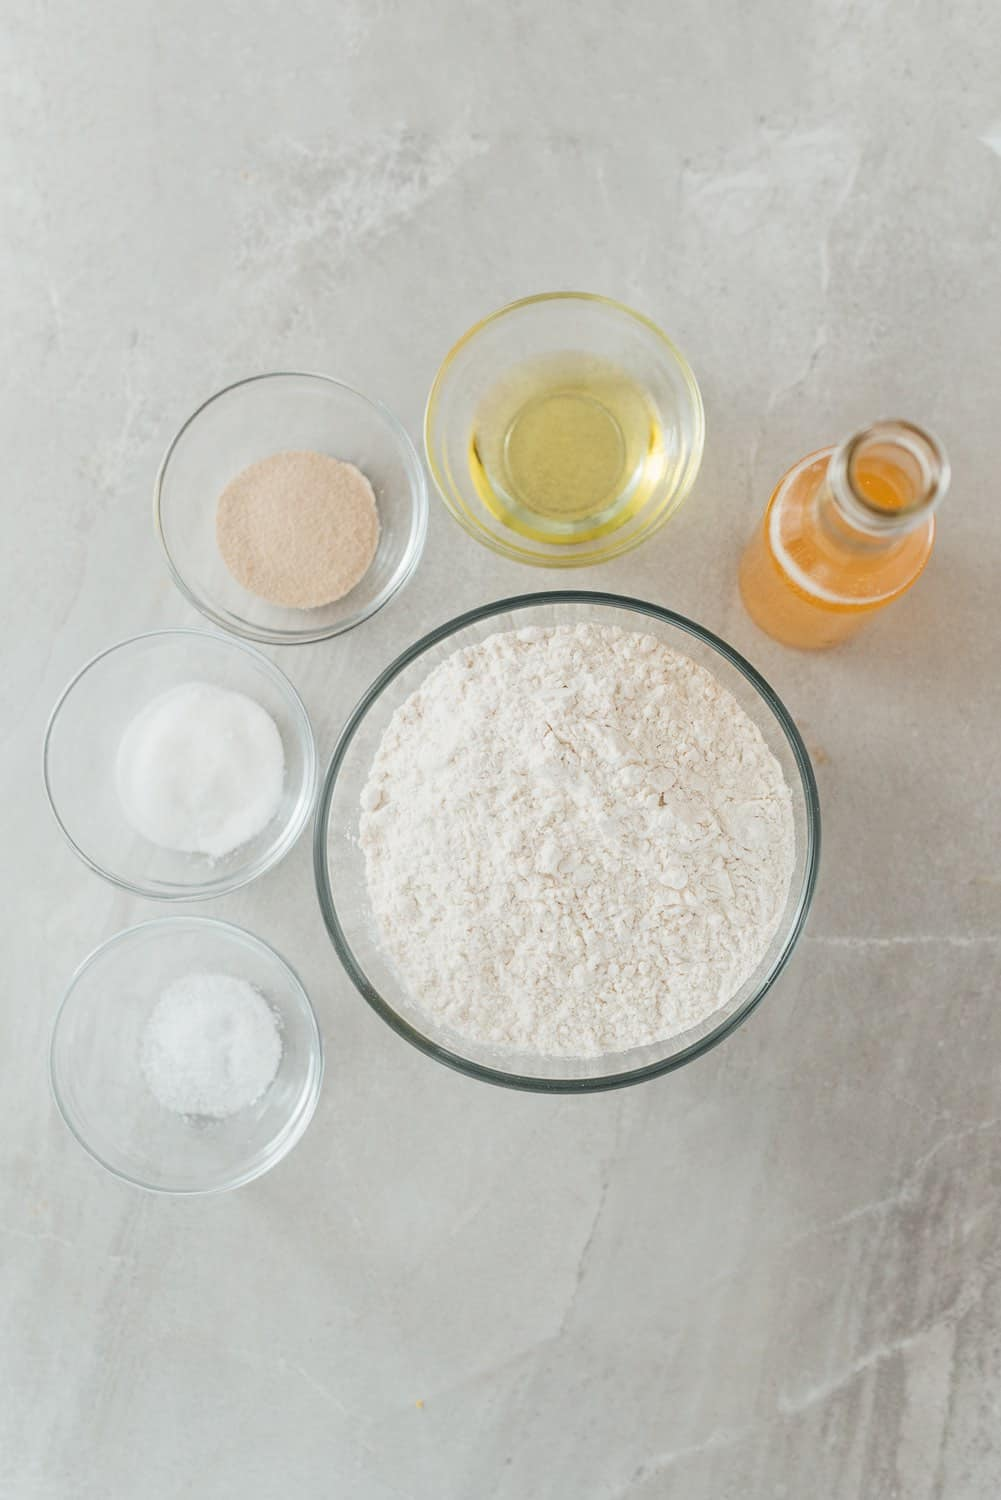 Ingredients for making beer pizza dough including salt, white sugar, olive oil, all-purpose flour, beer and yeast.